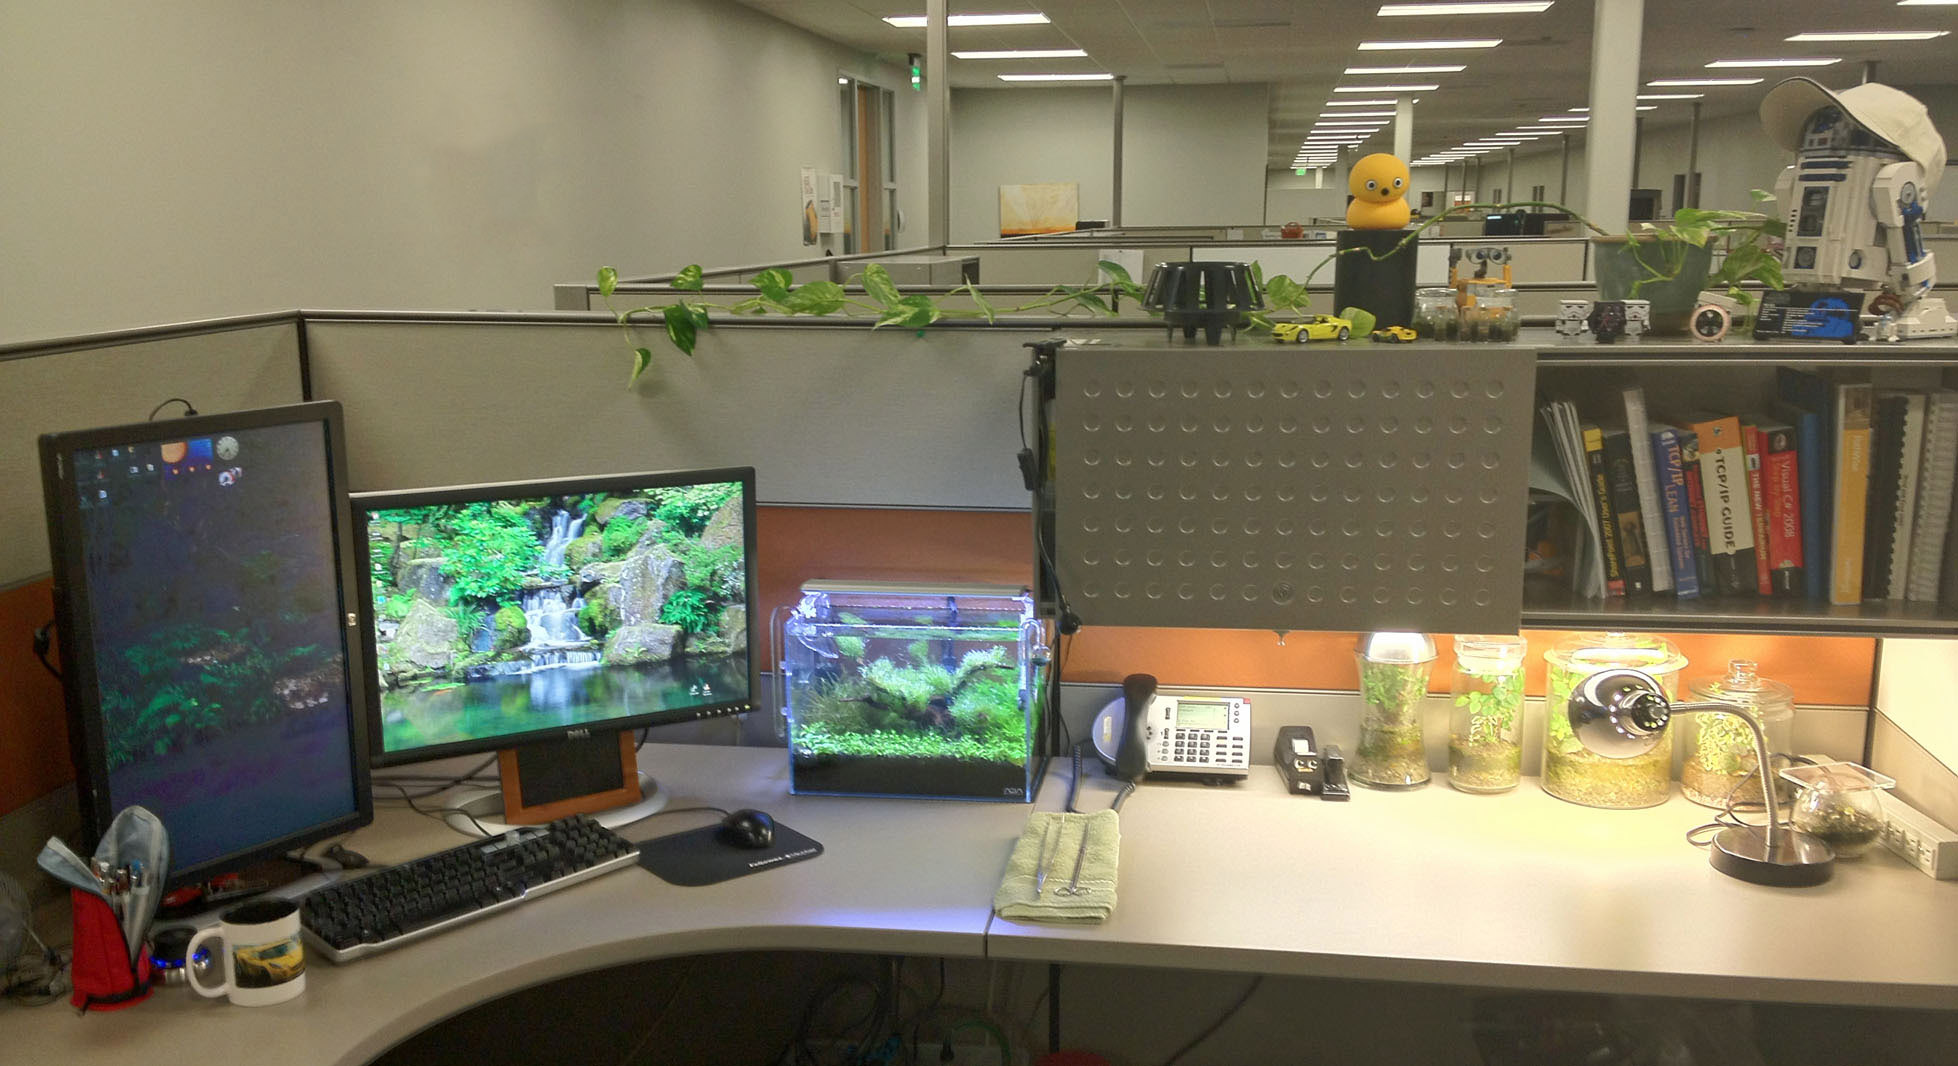 Fish tank for the office - And A Shot Of The Entire Cubicle